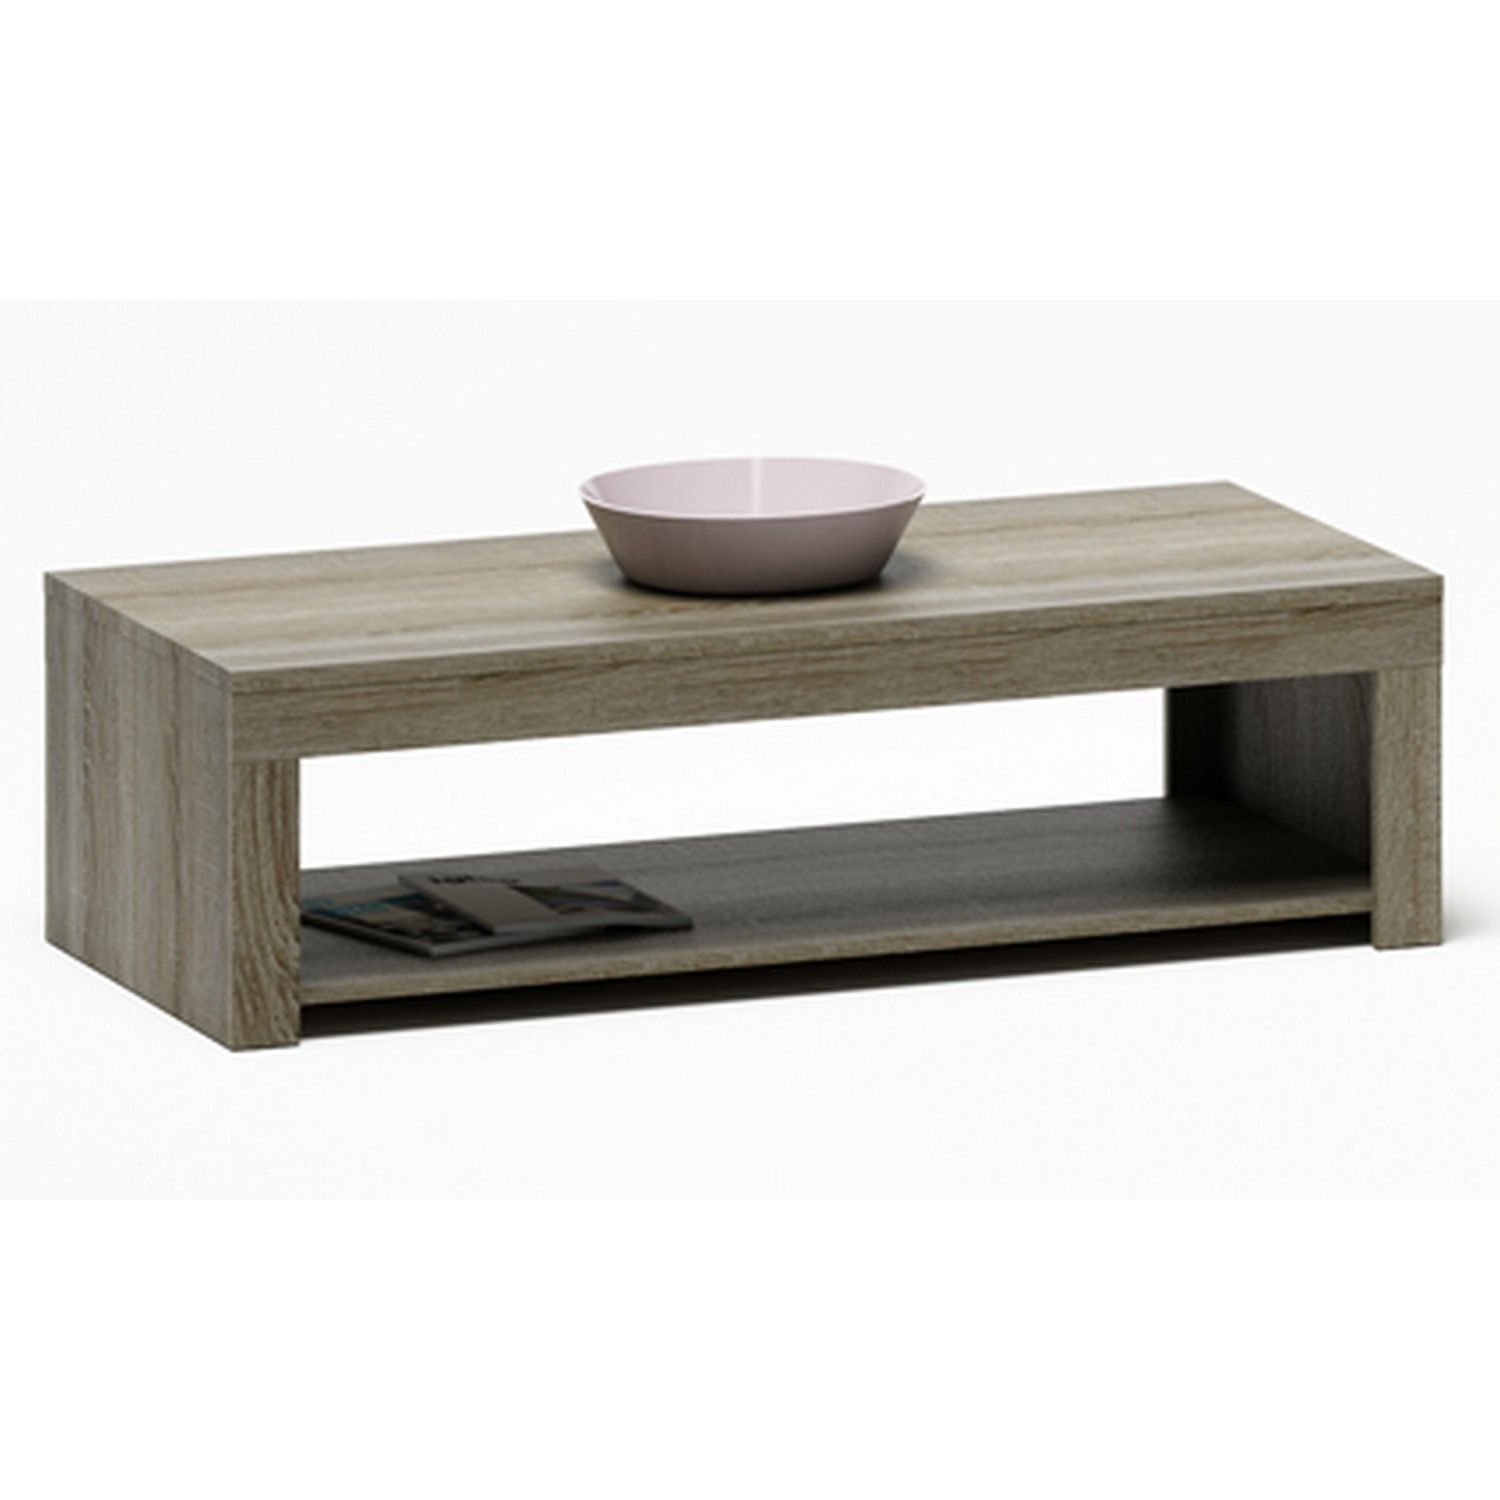 The Range Living Room Furniture Rubis Dark Sonoma Oak Coffee Table Furniture The Range